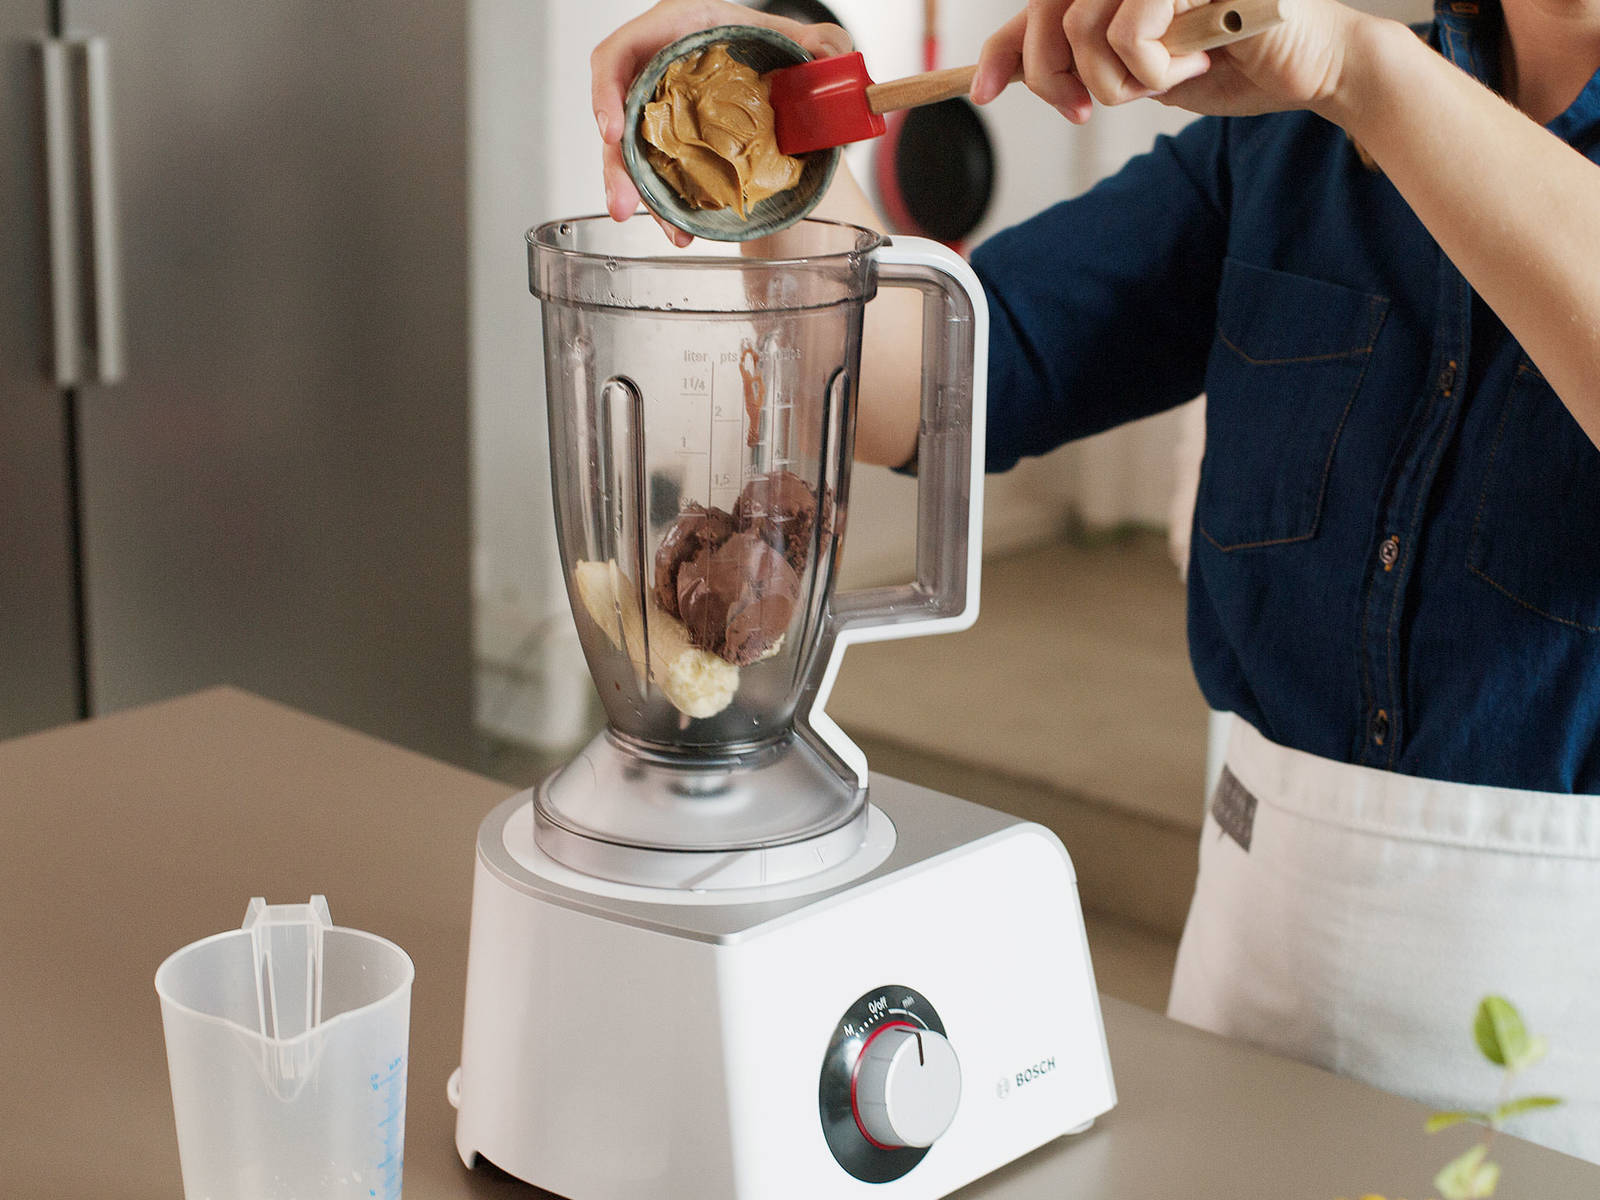 Combine ice cream, milk, peanut butter, banana, and salt in a blender.